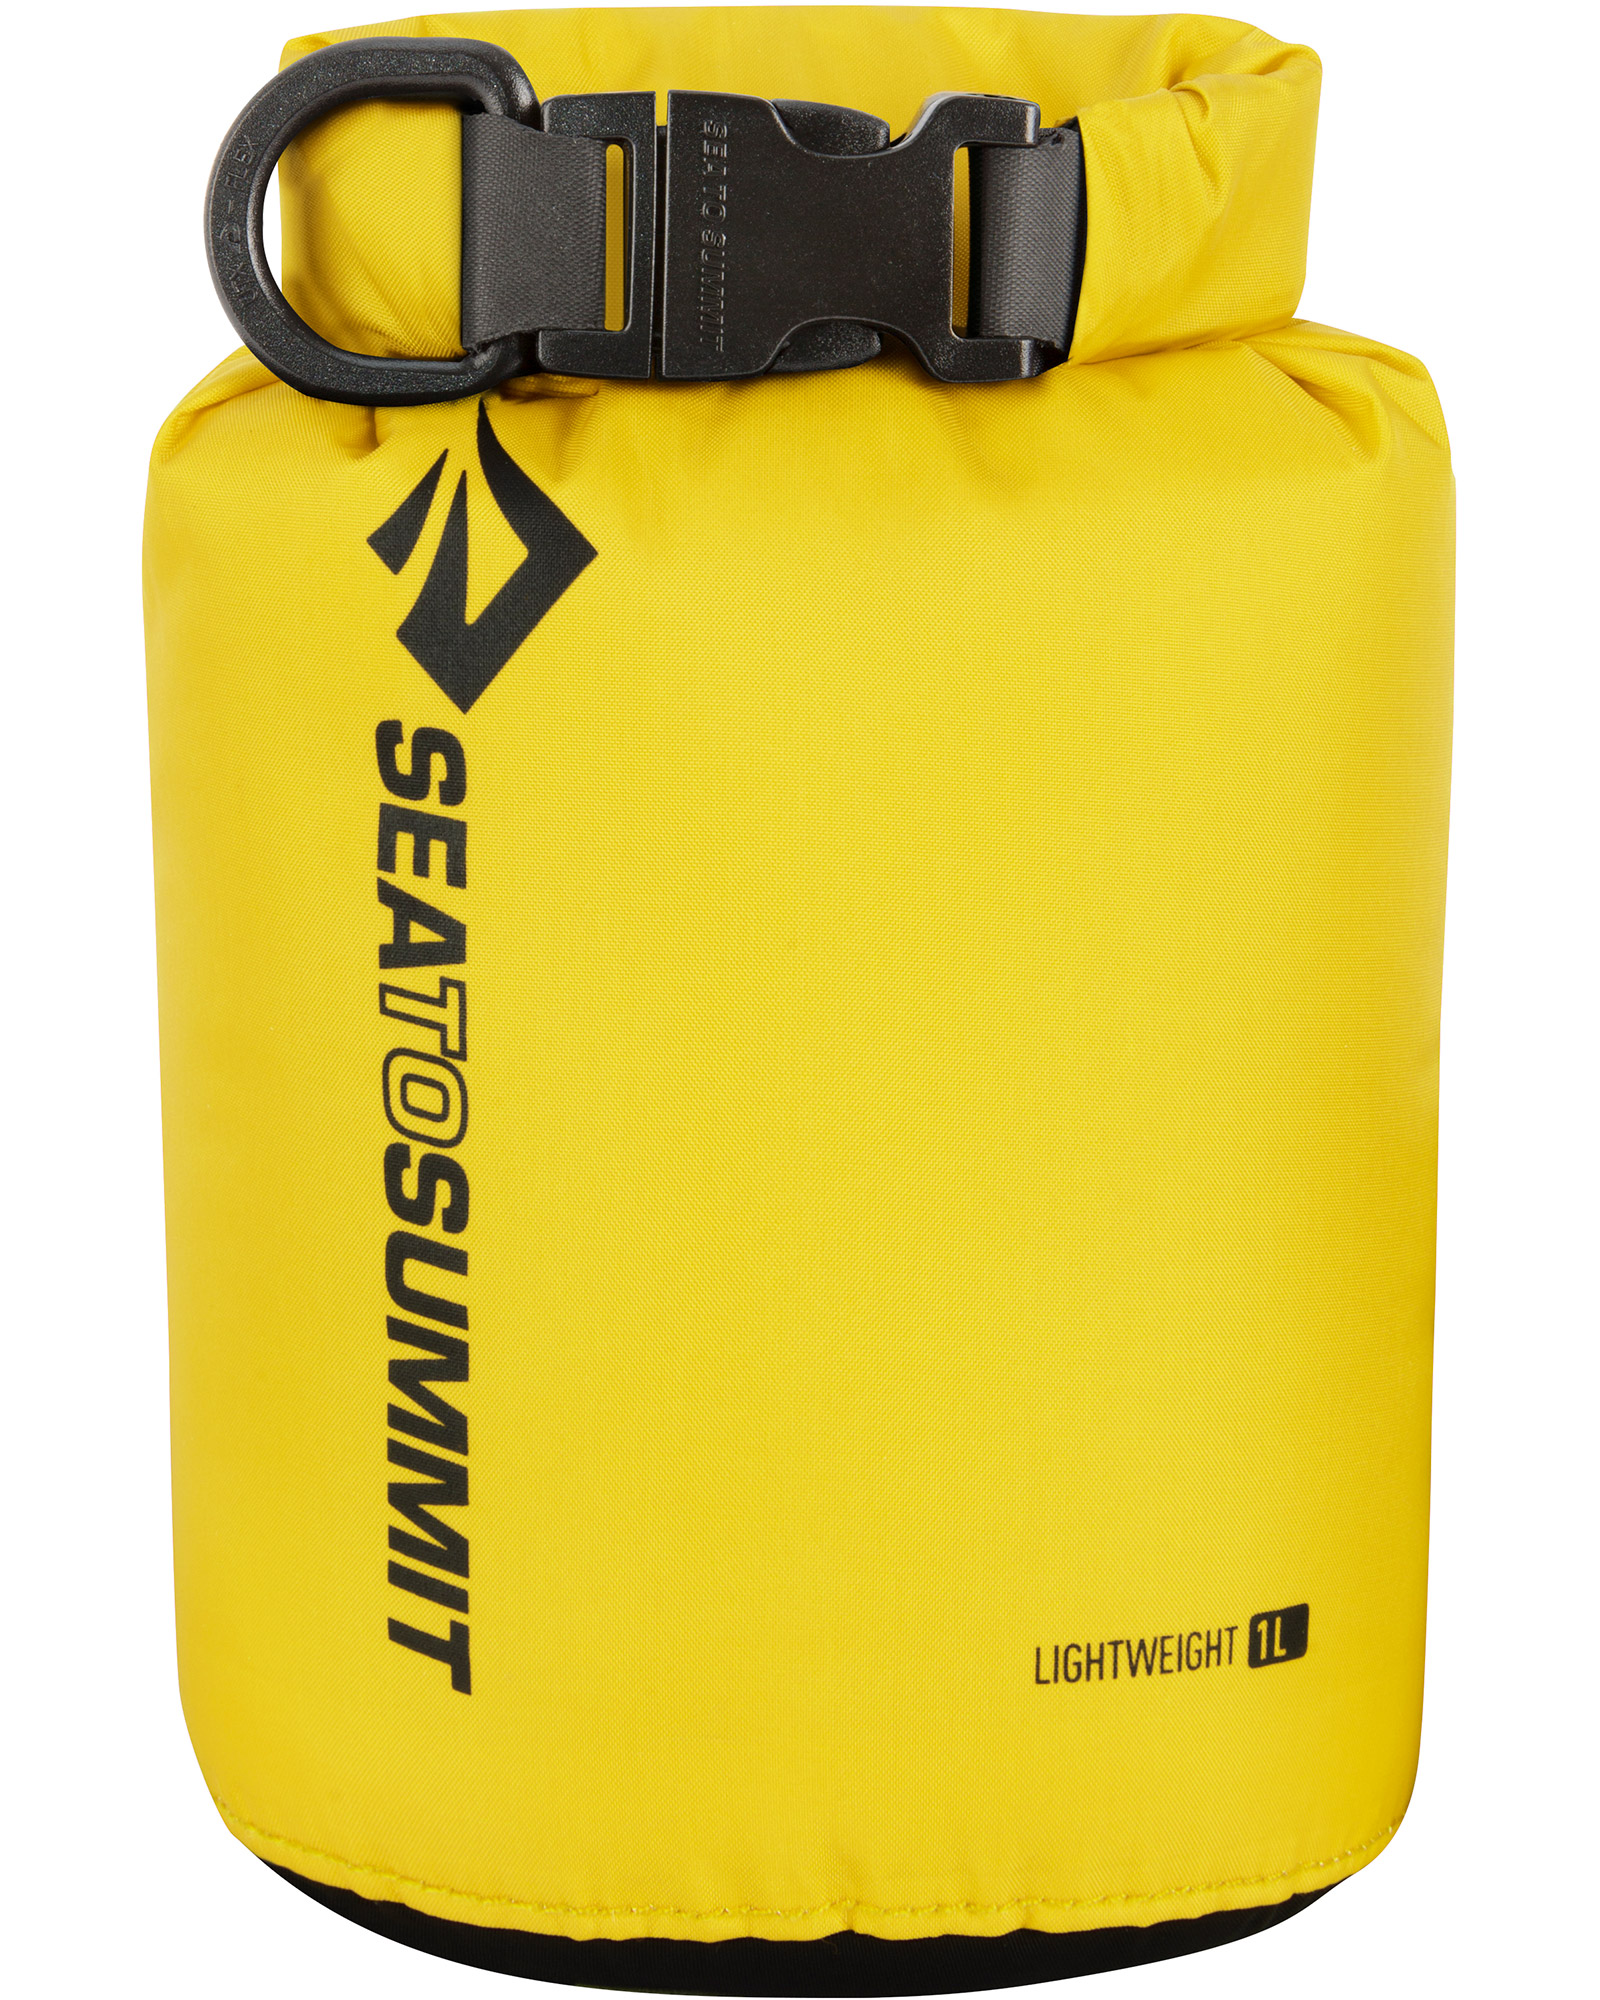 Product image of Sea to Summit Lightweight Dry Sack 1L